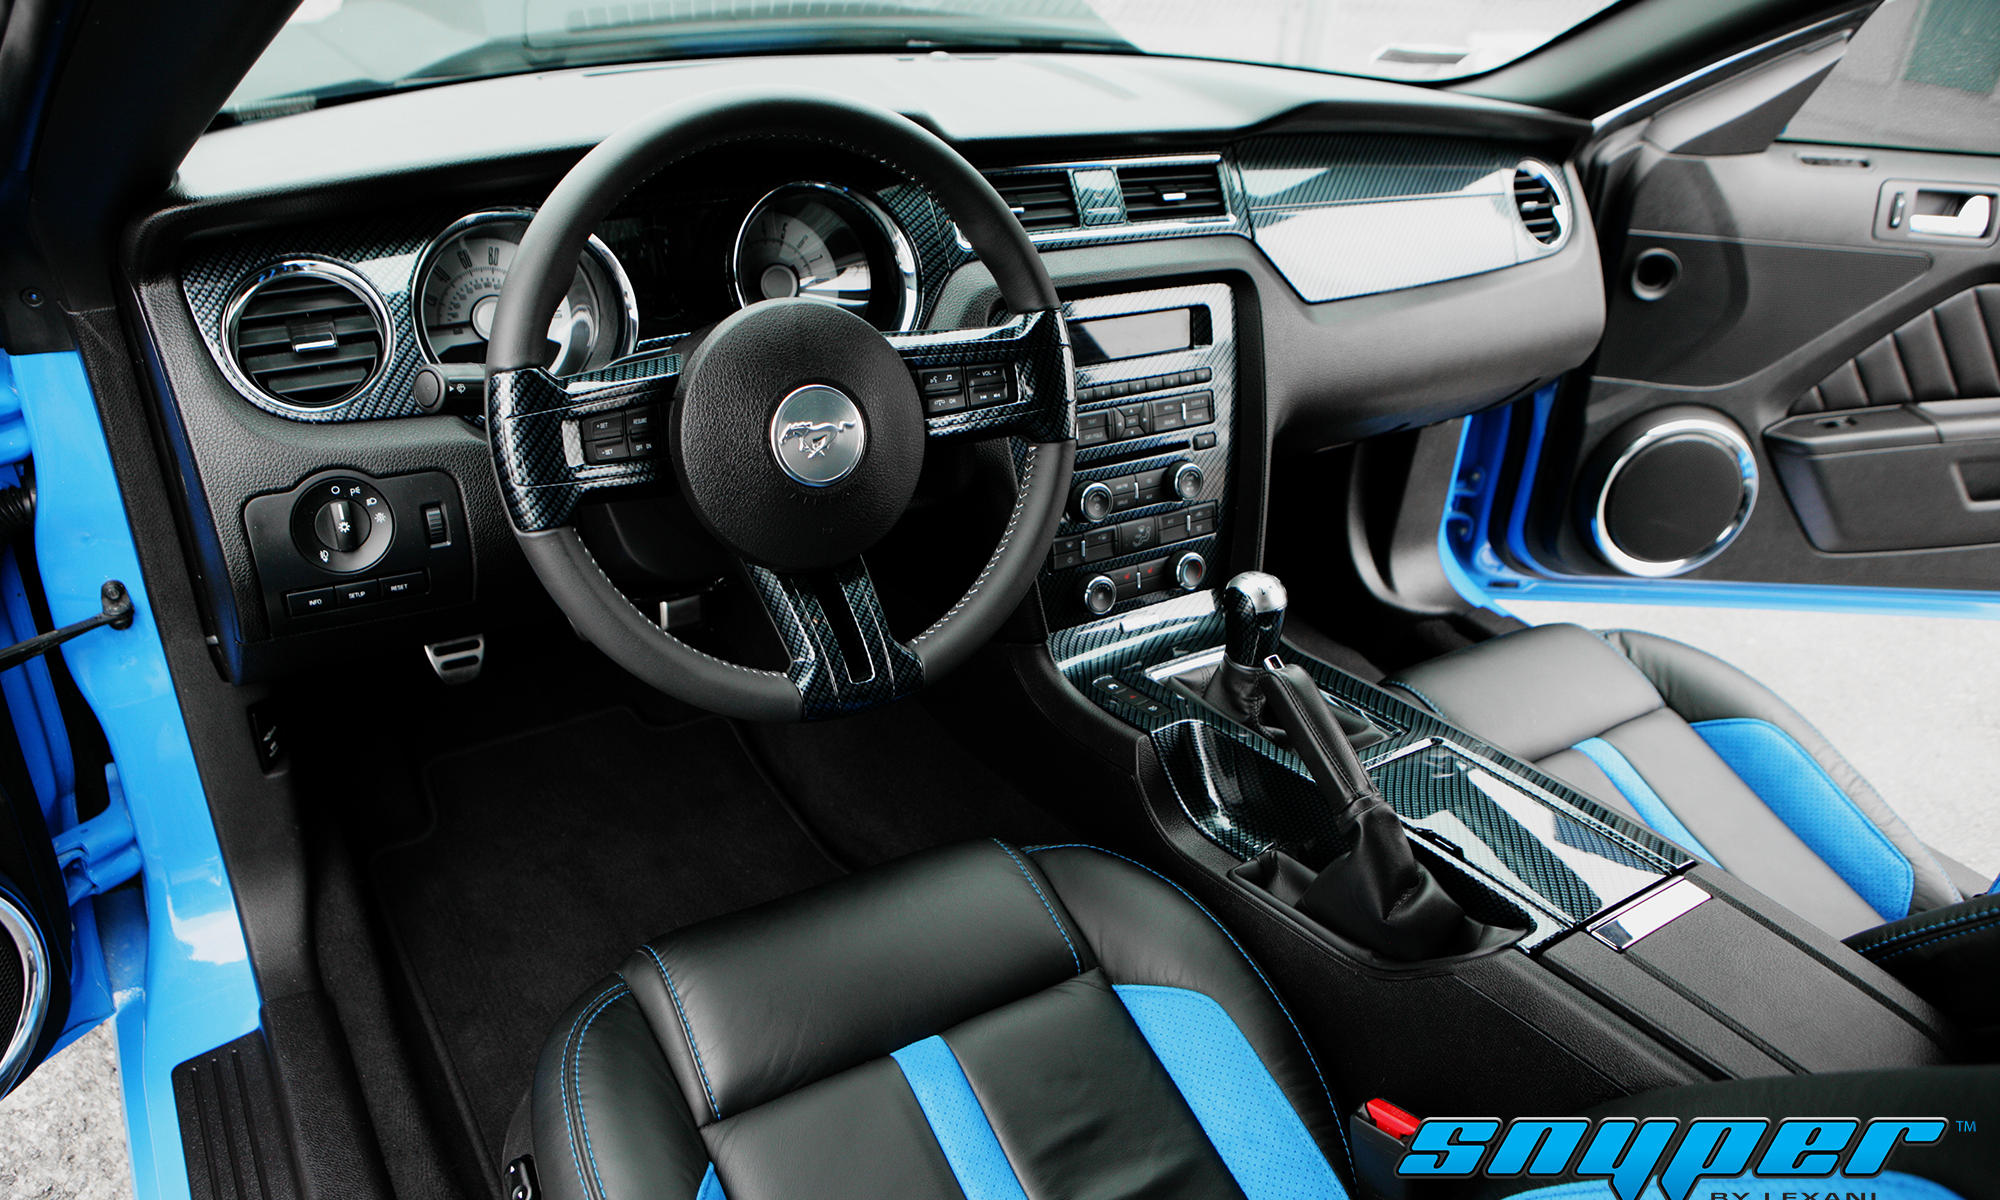 Ford Mustang, Snyper by Lexani